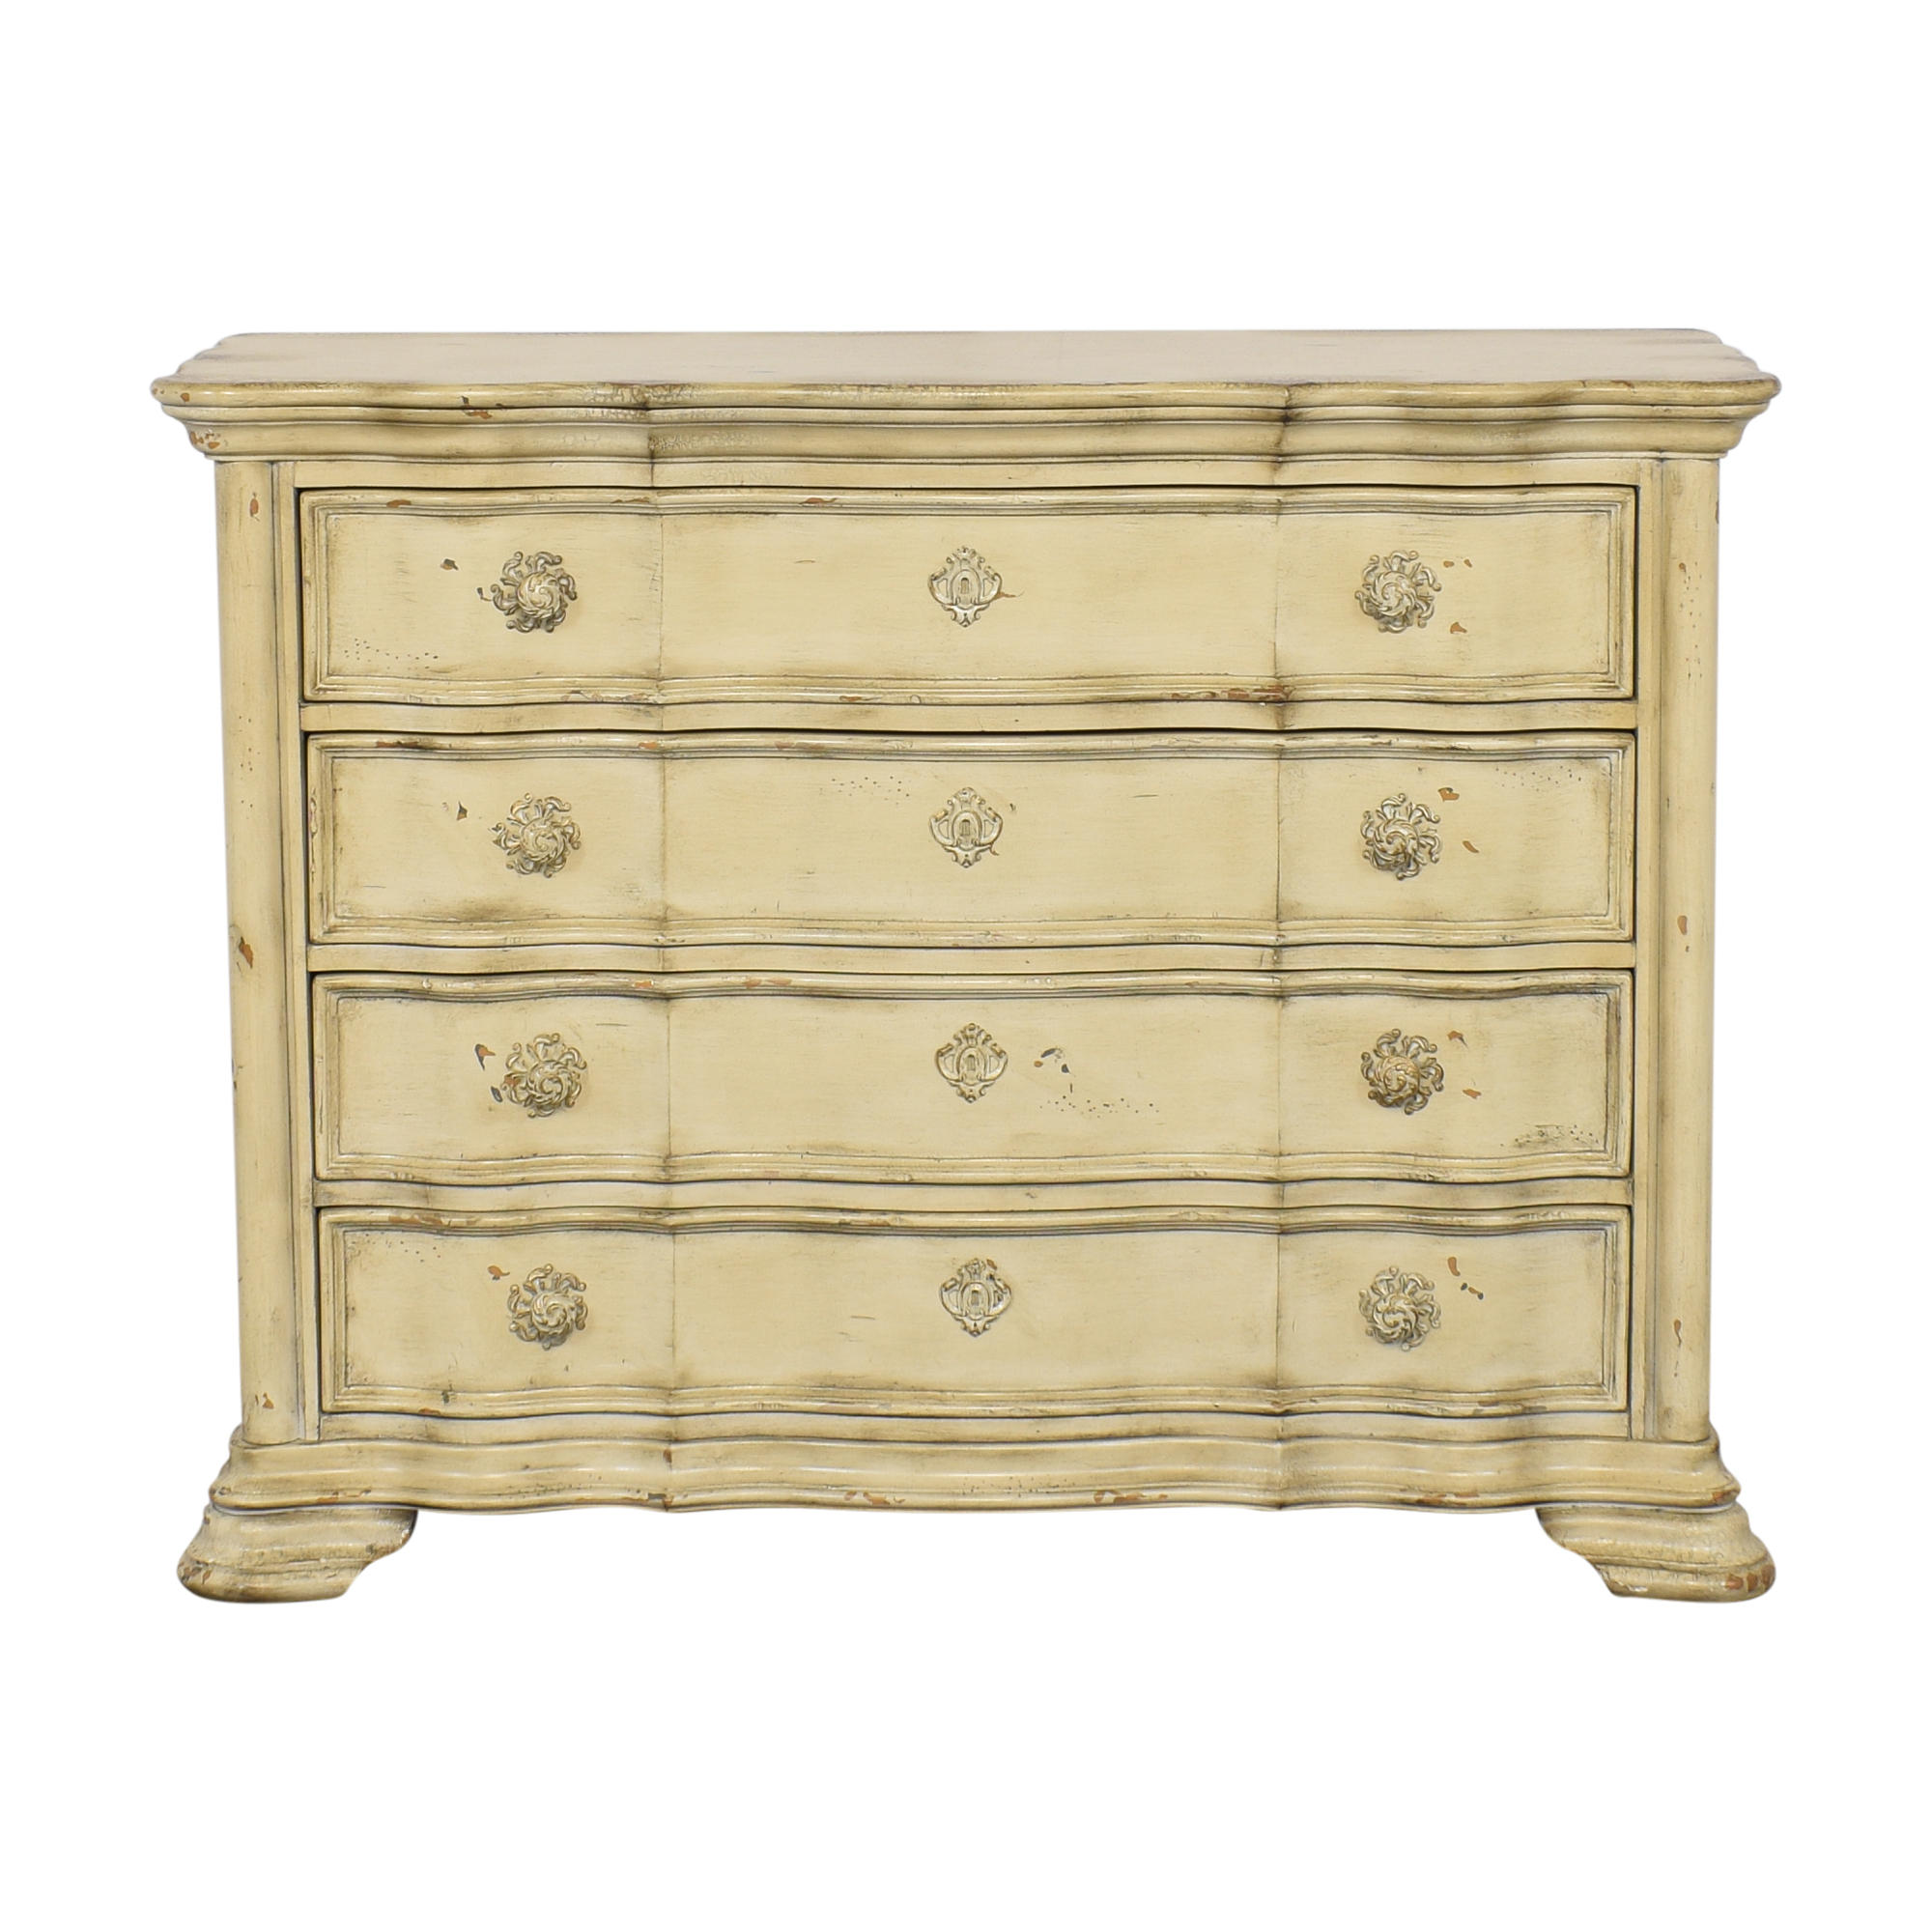 Pulaski Furniture Pulaski Furniture Four Drawer Dresser ct